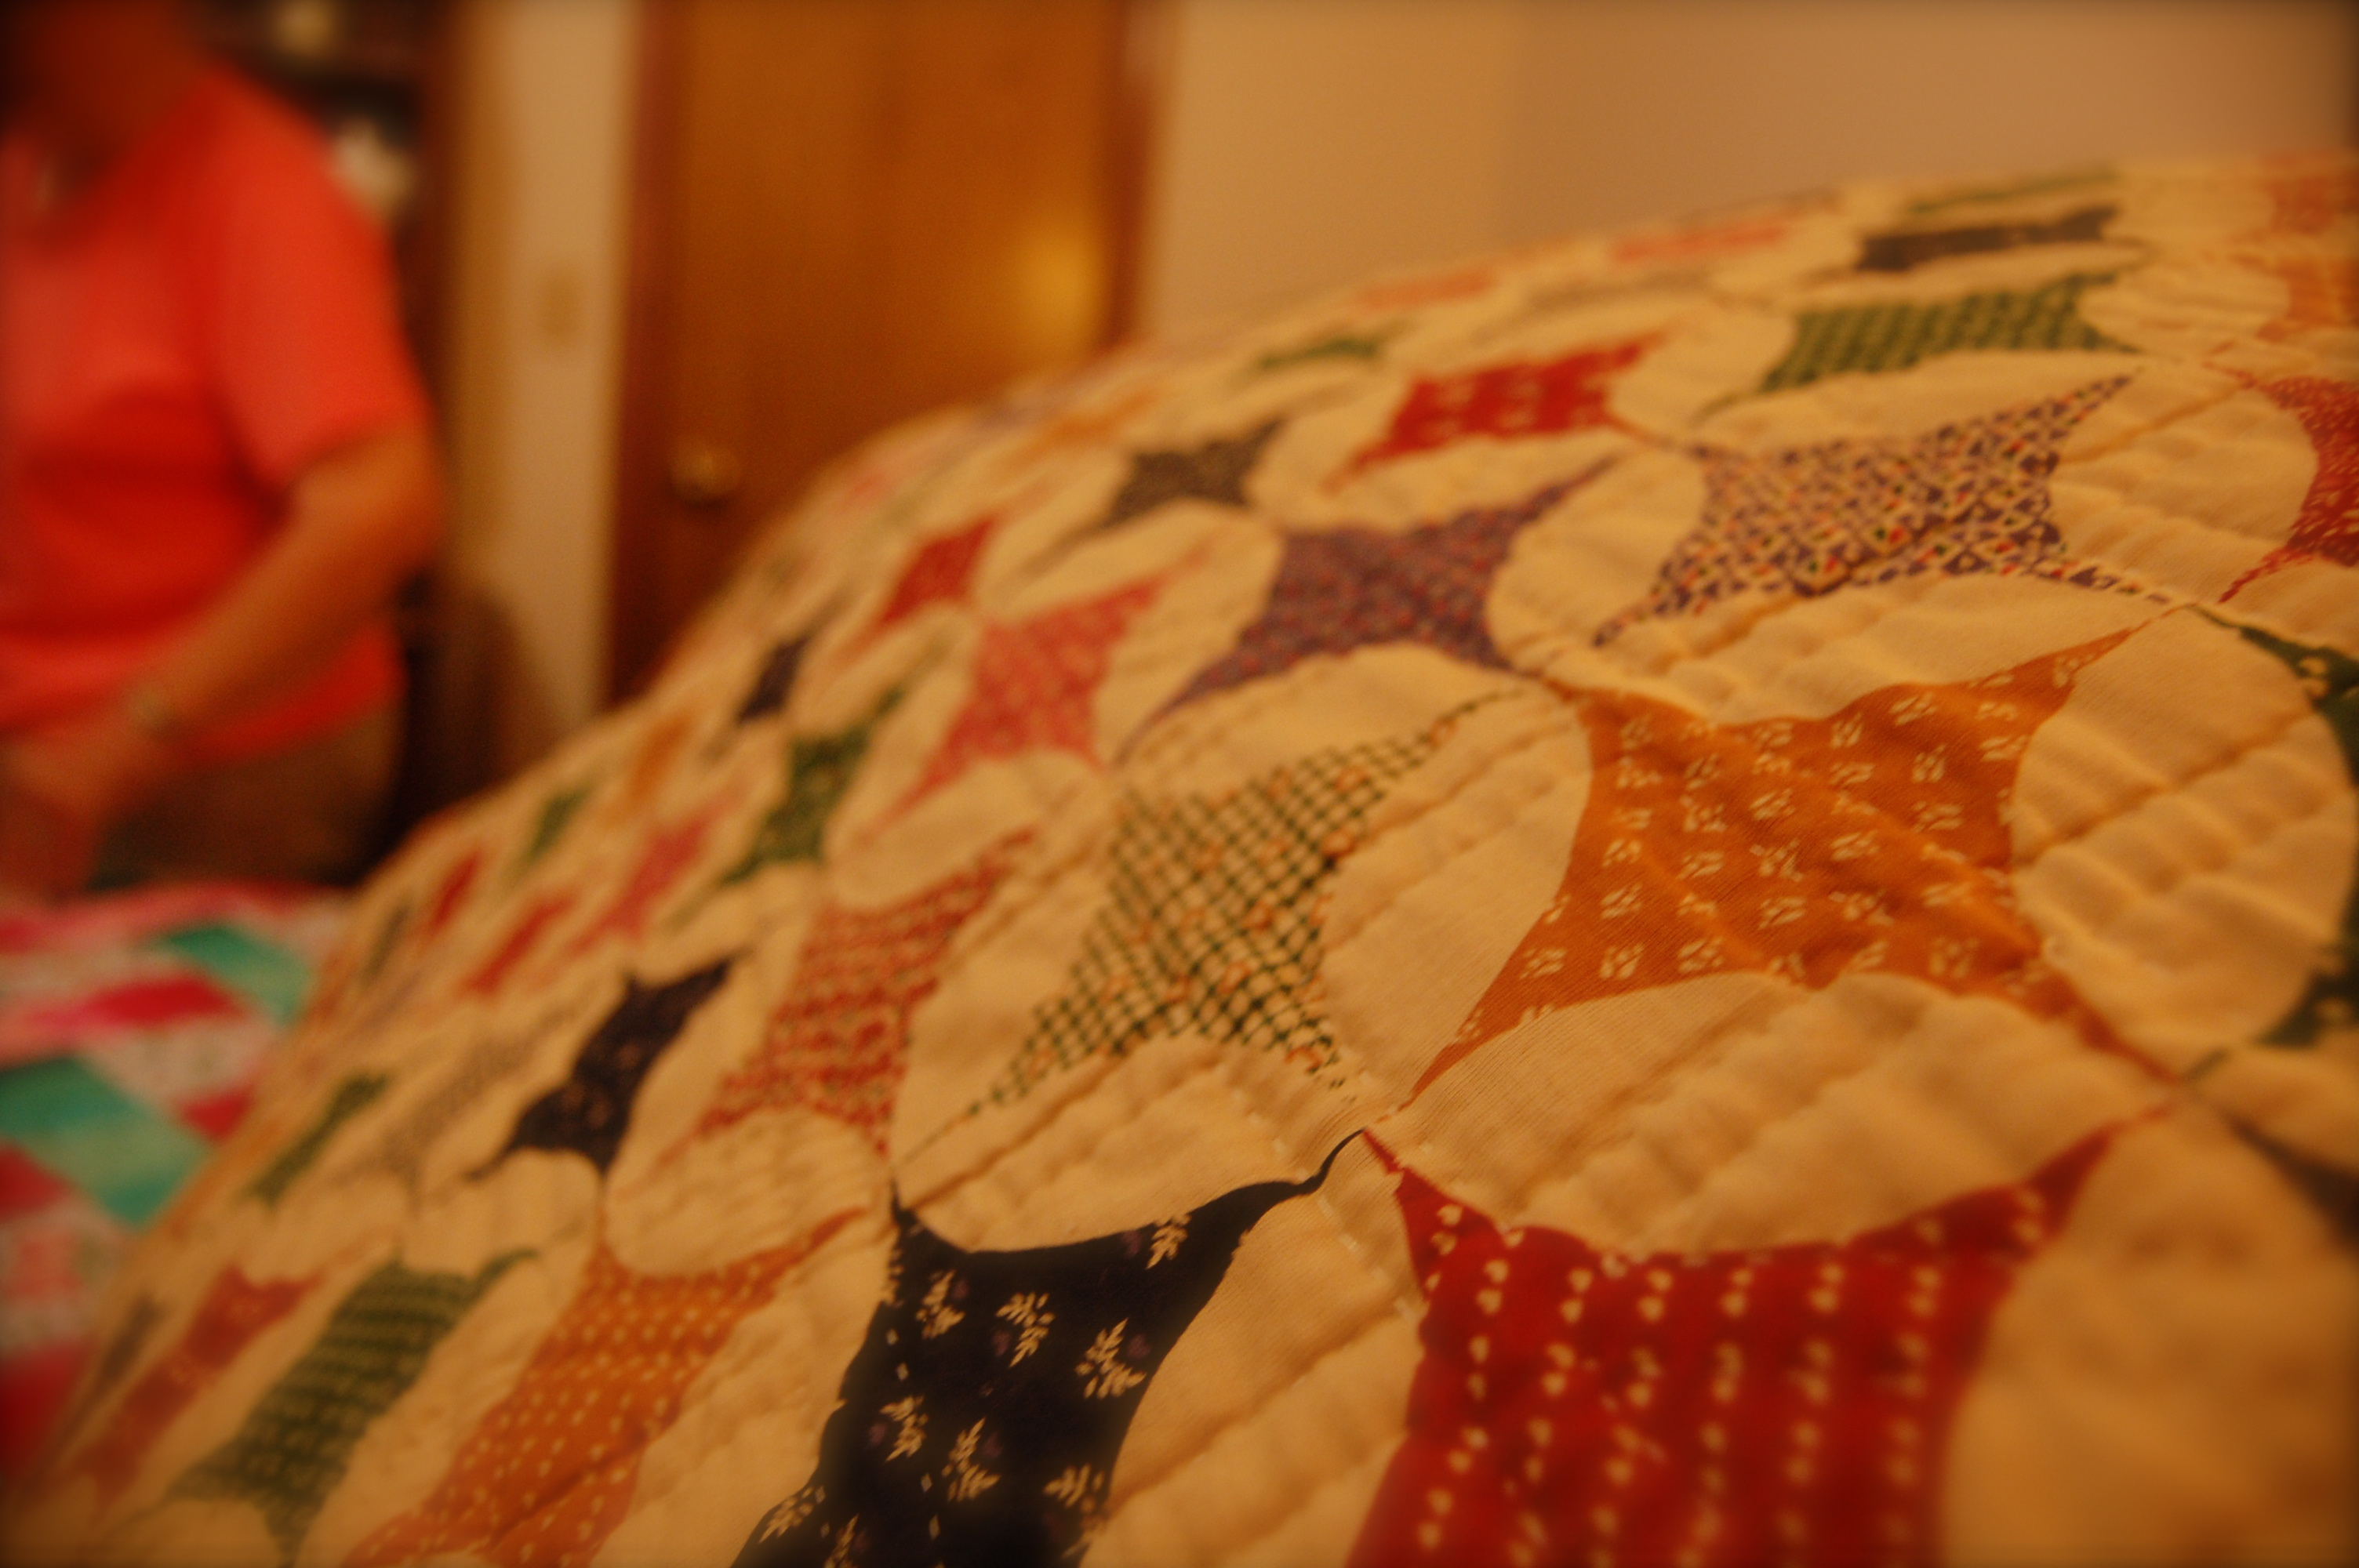 This is the back of the quilt!